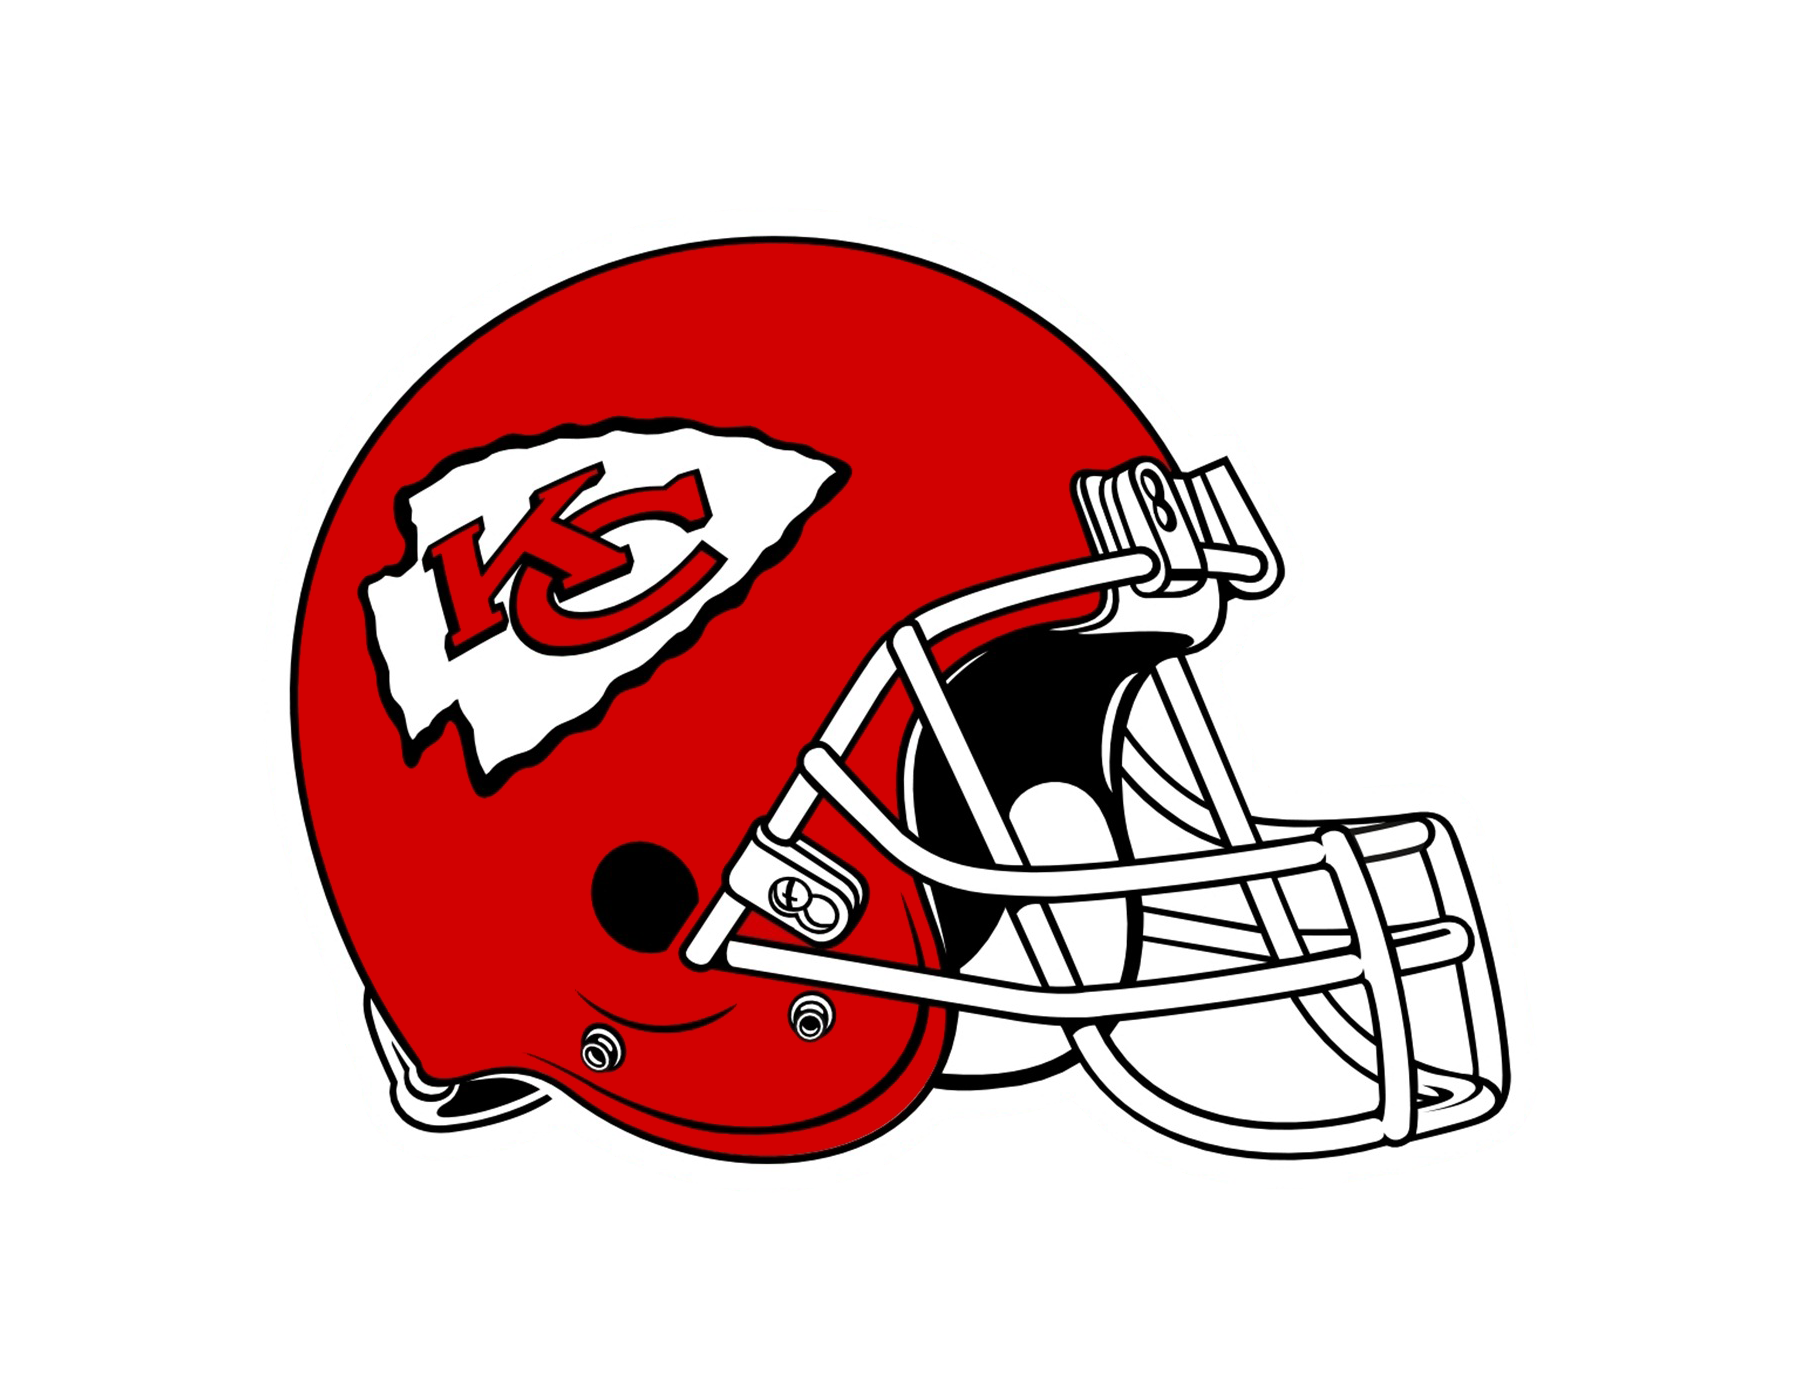 File:Kansas City Chiefs wordm